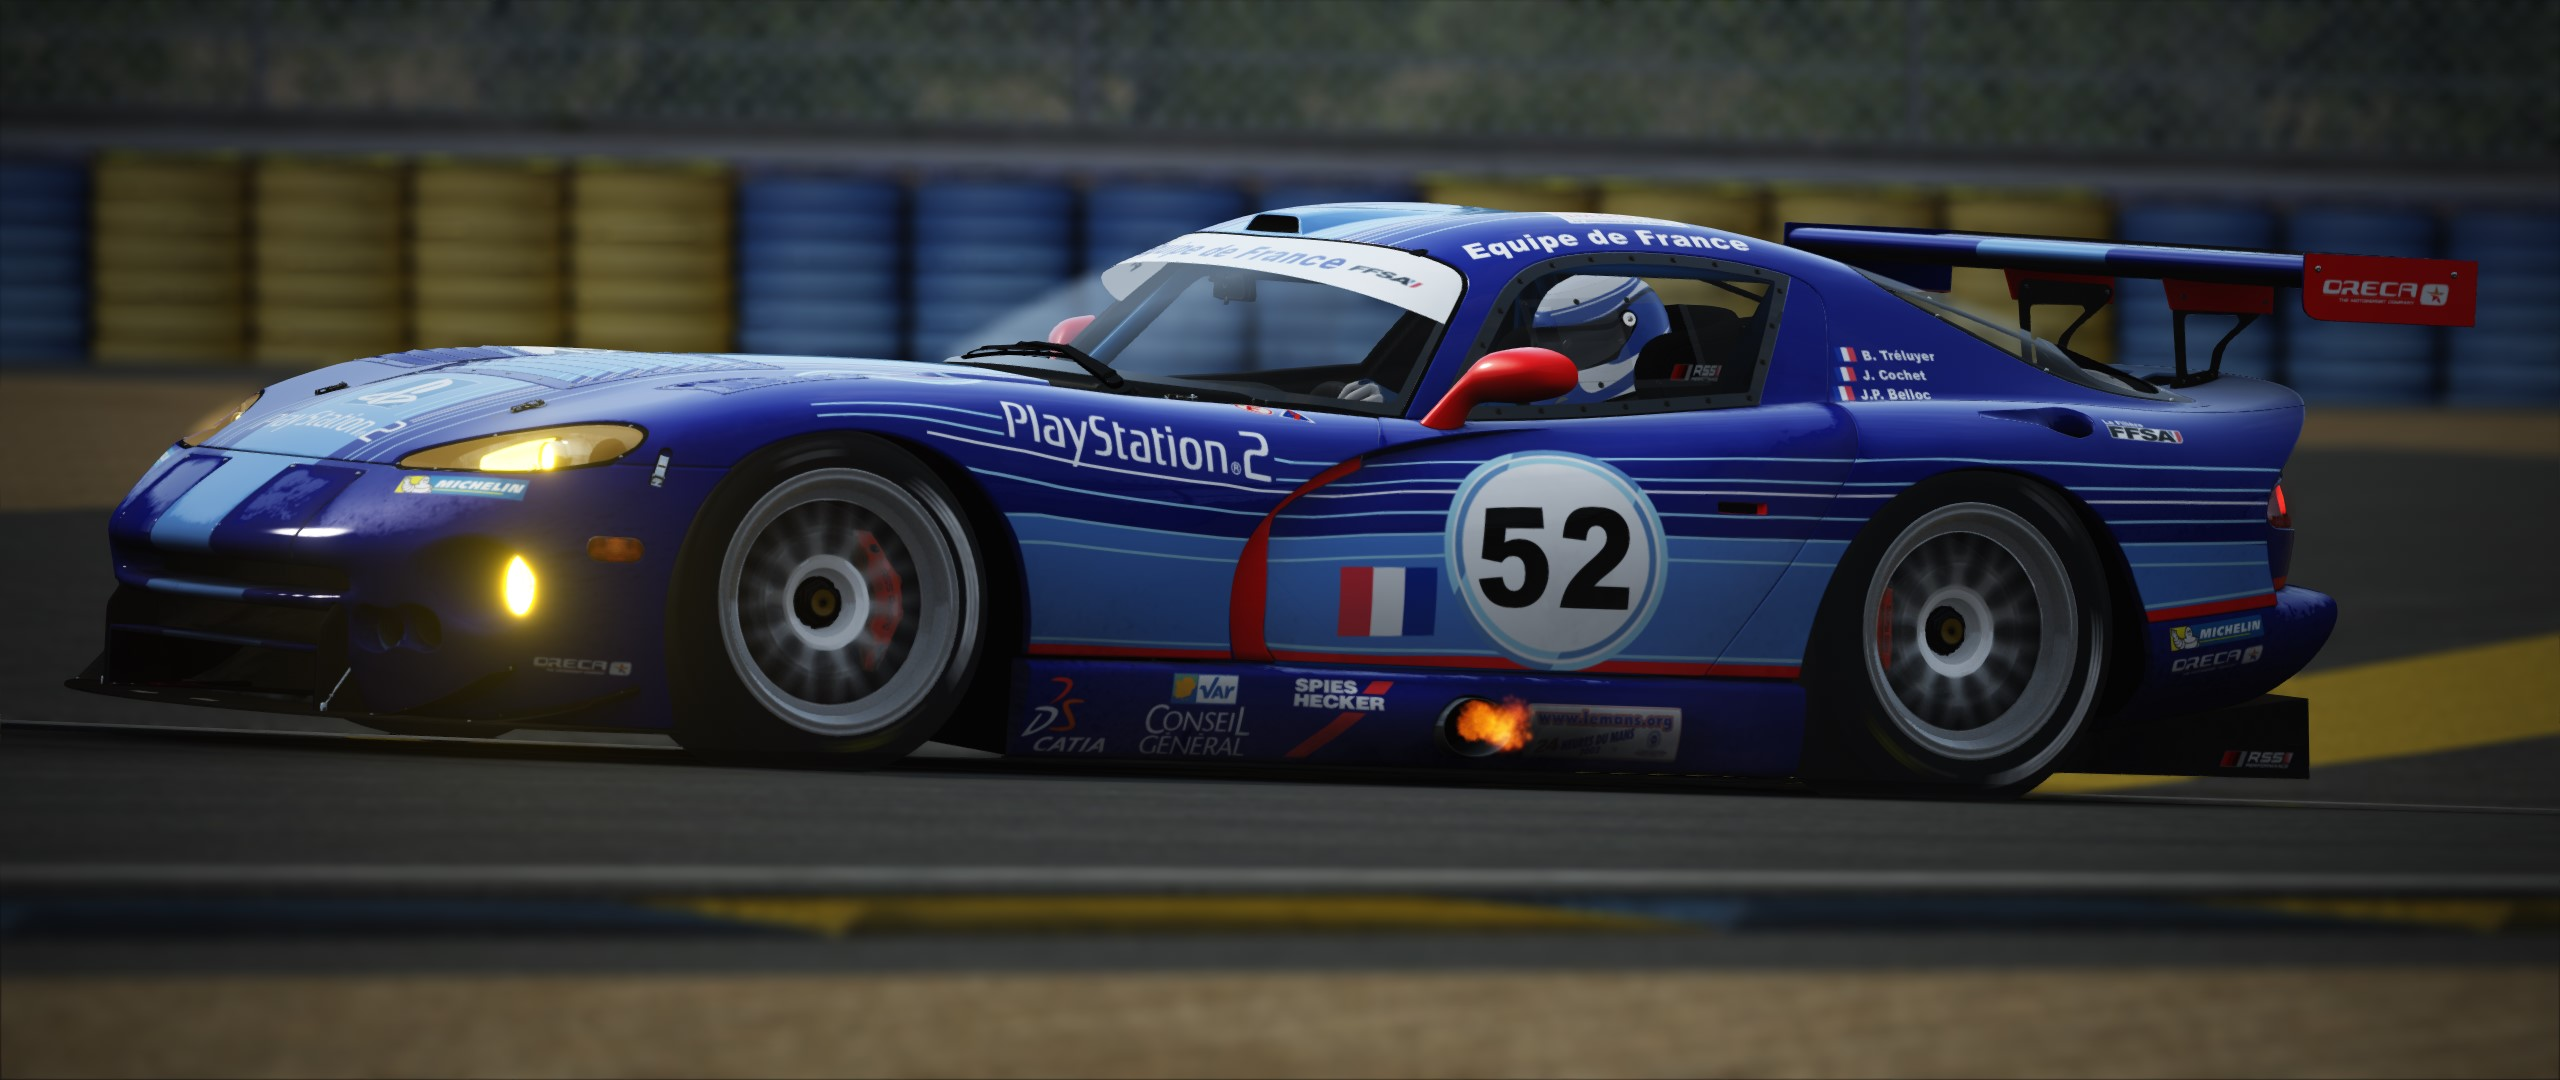 Screenshot_rss_gt_vortex_v10_nagp_lemans_v2_30-12-117-14-27-21good.jpg